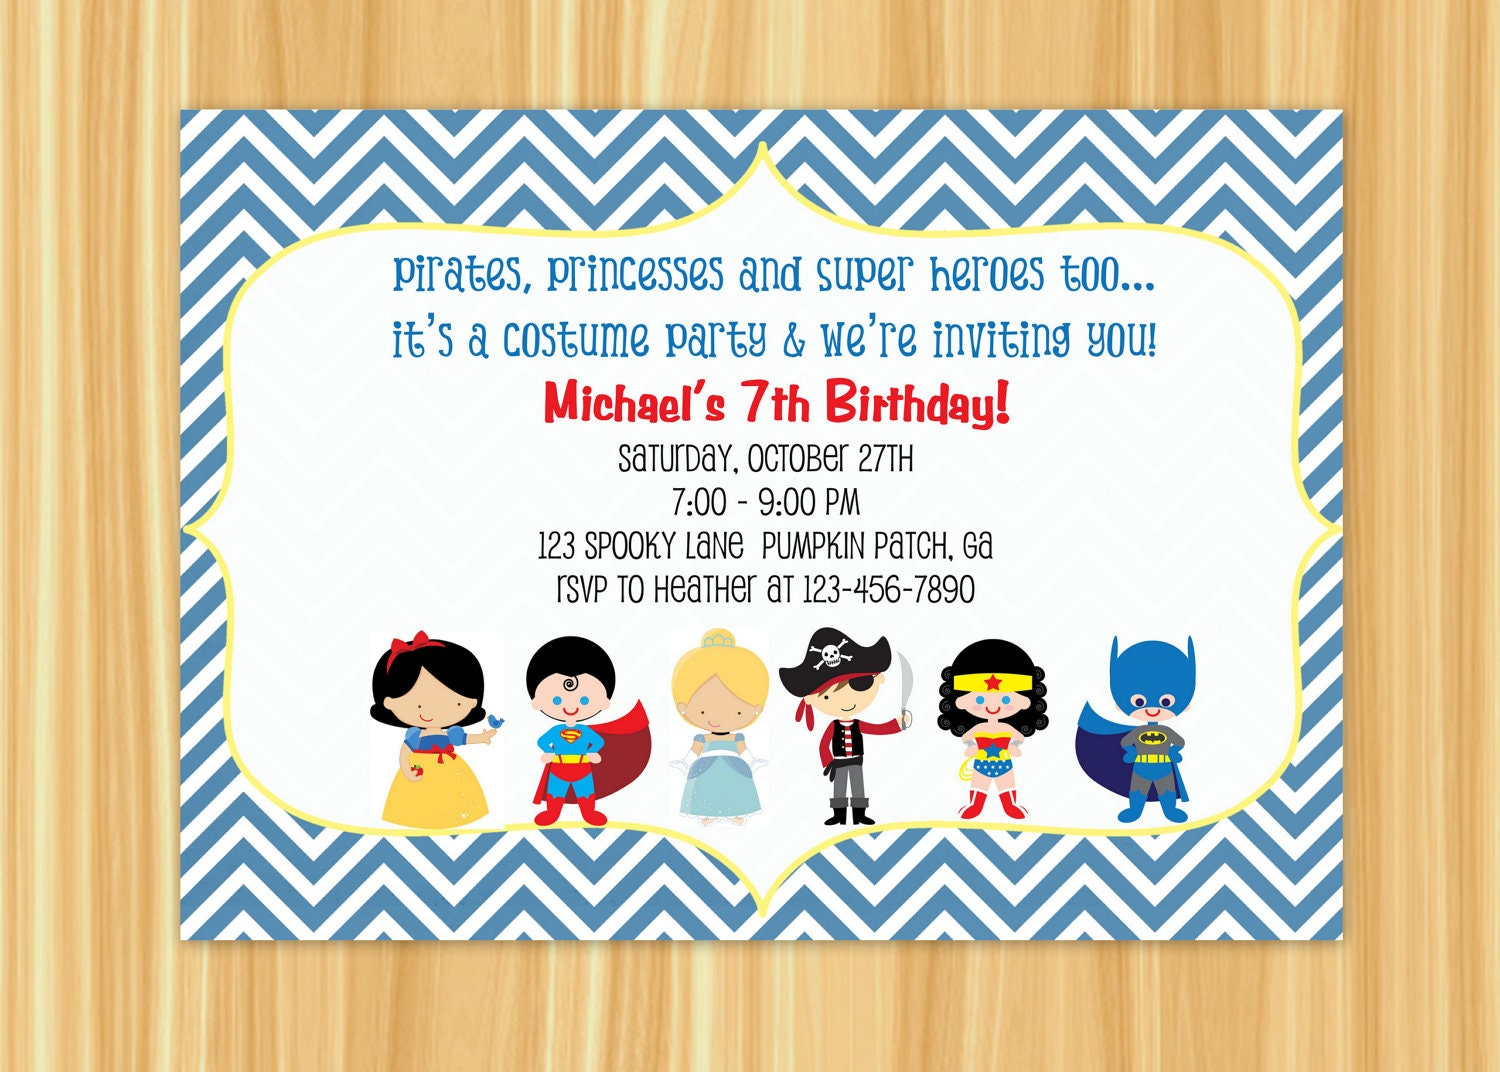 Kids Costume Party Birthday Invitation Blue or Orange Chevron